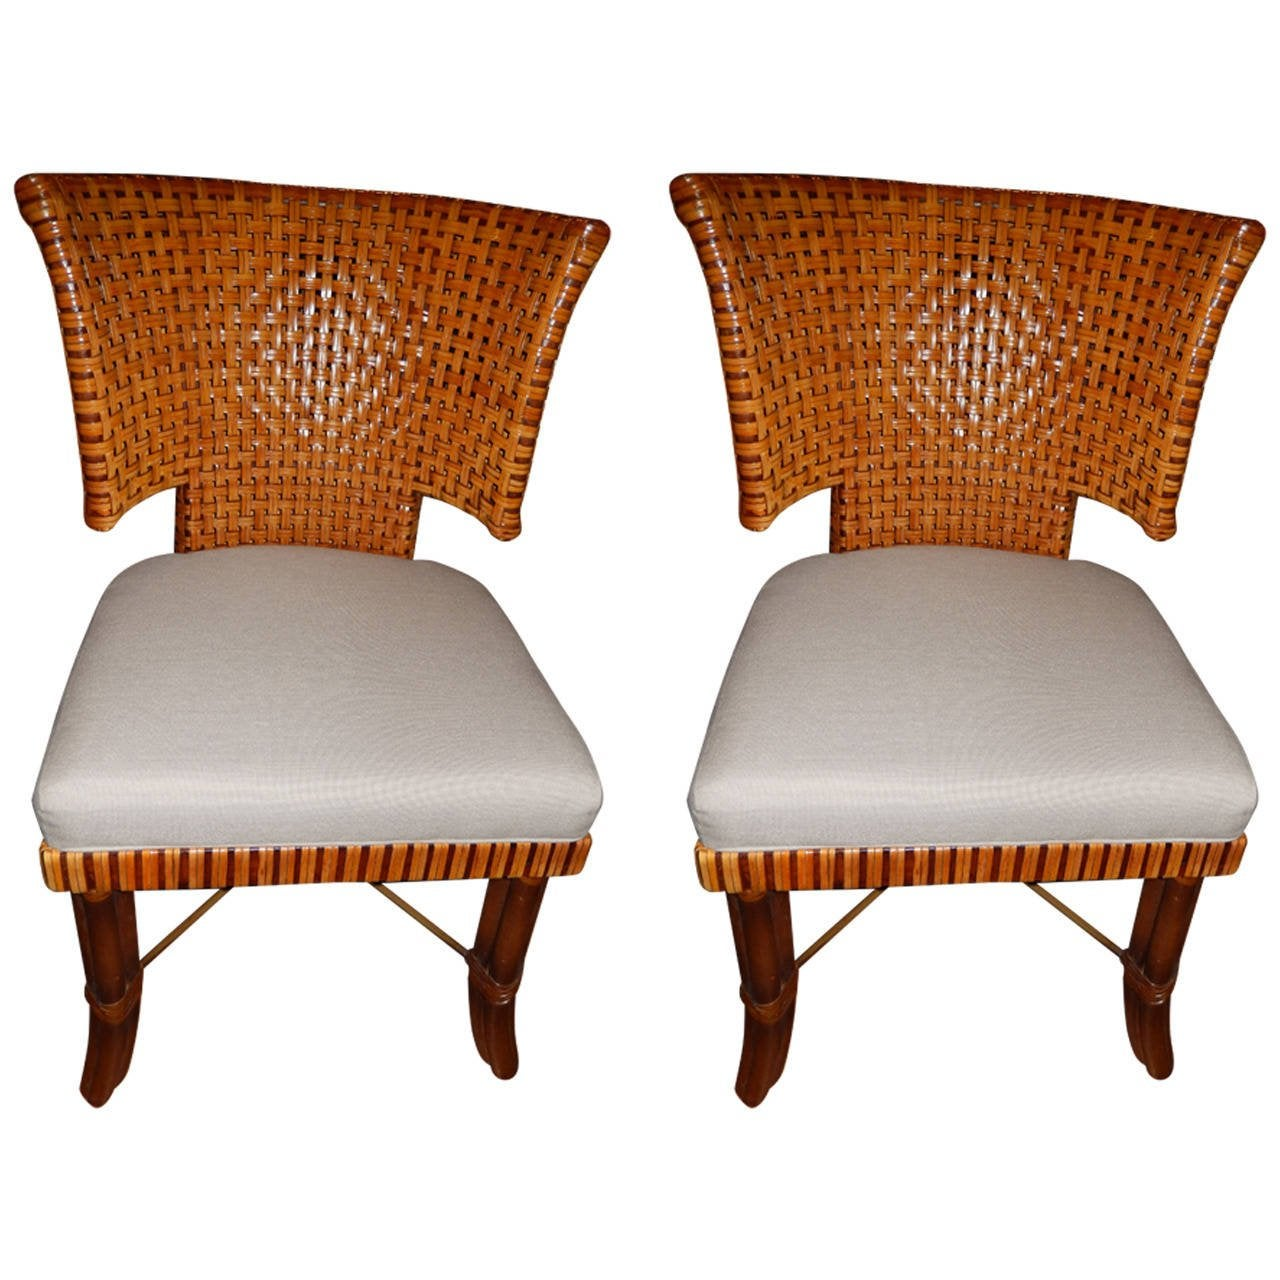 Pair Of Danish Modern Handwoven Leather Dining Room Chairs For Sale At  1stdibs